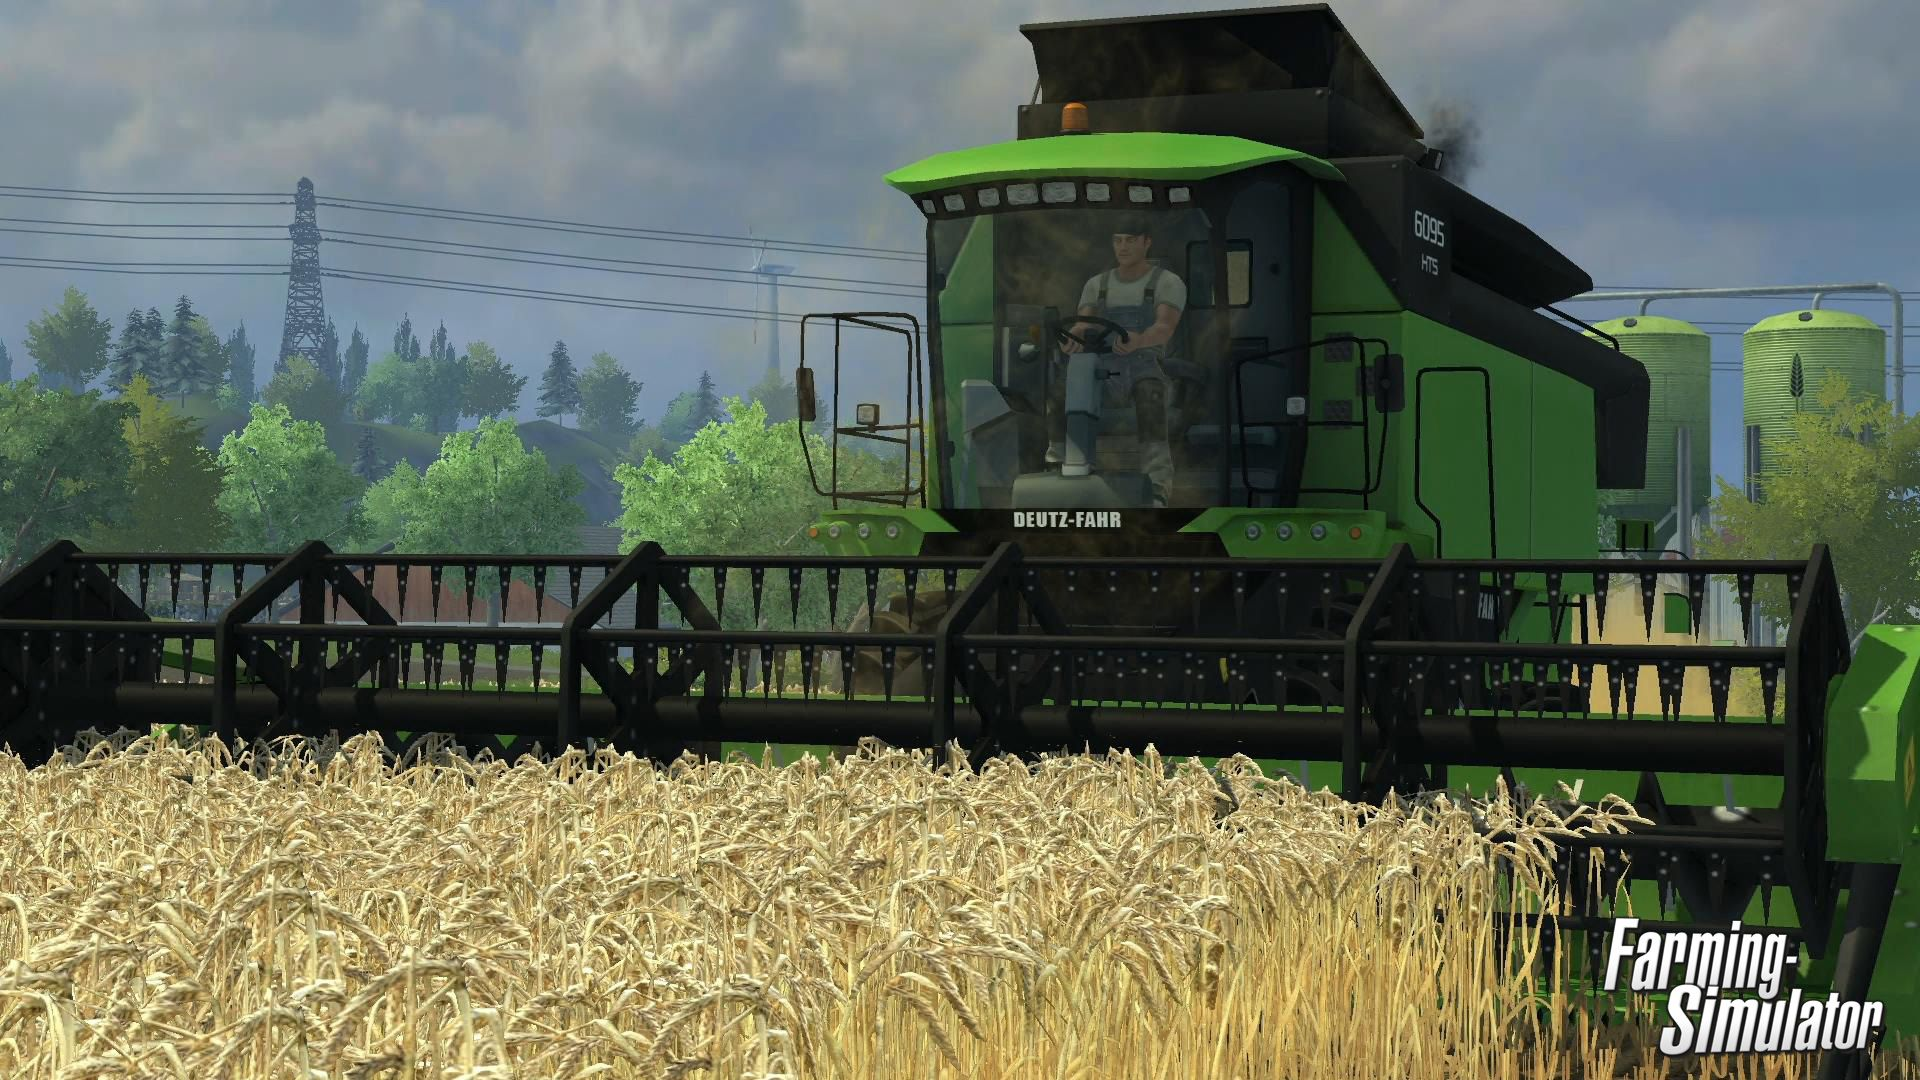 Farming Simulator 15 release date announced